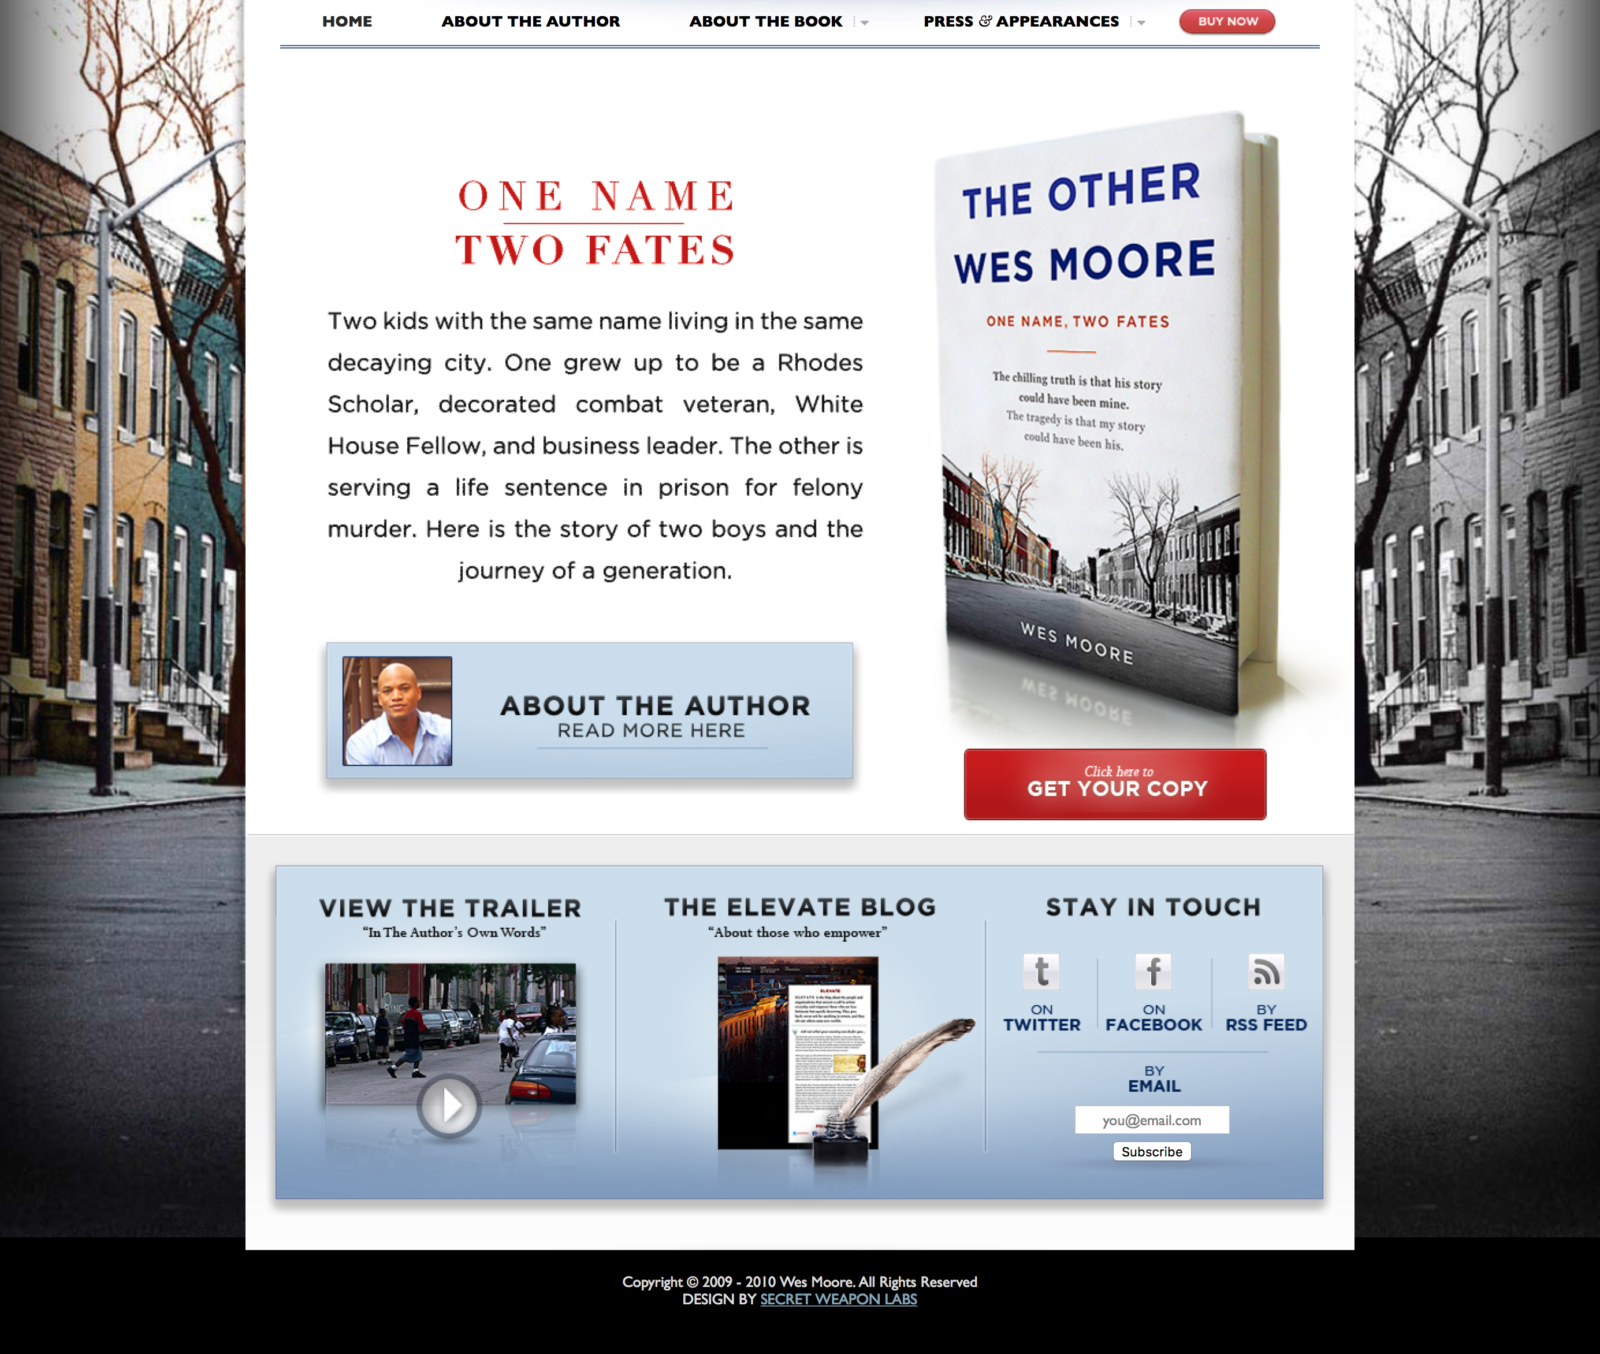 The Other Wes Moore | The official home page of Westley Moore and home page for the book The Other Wes Moore